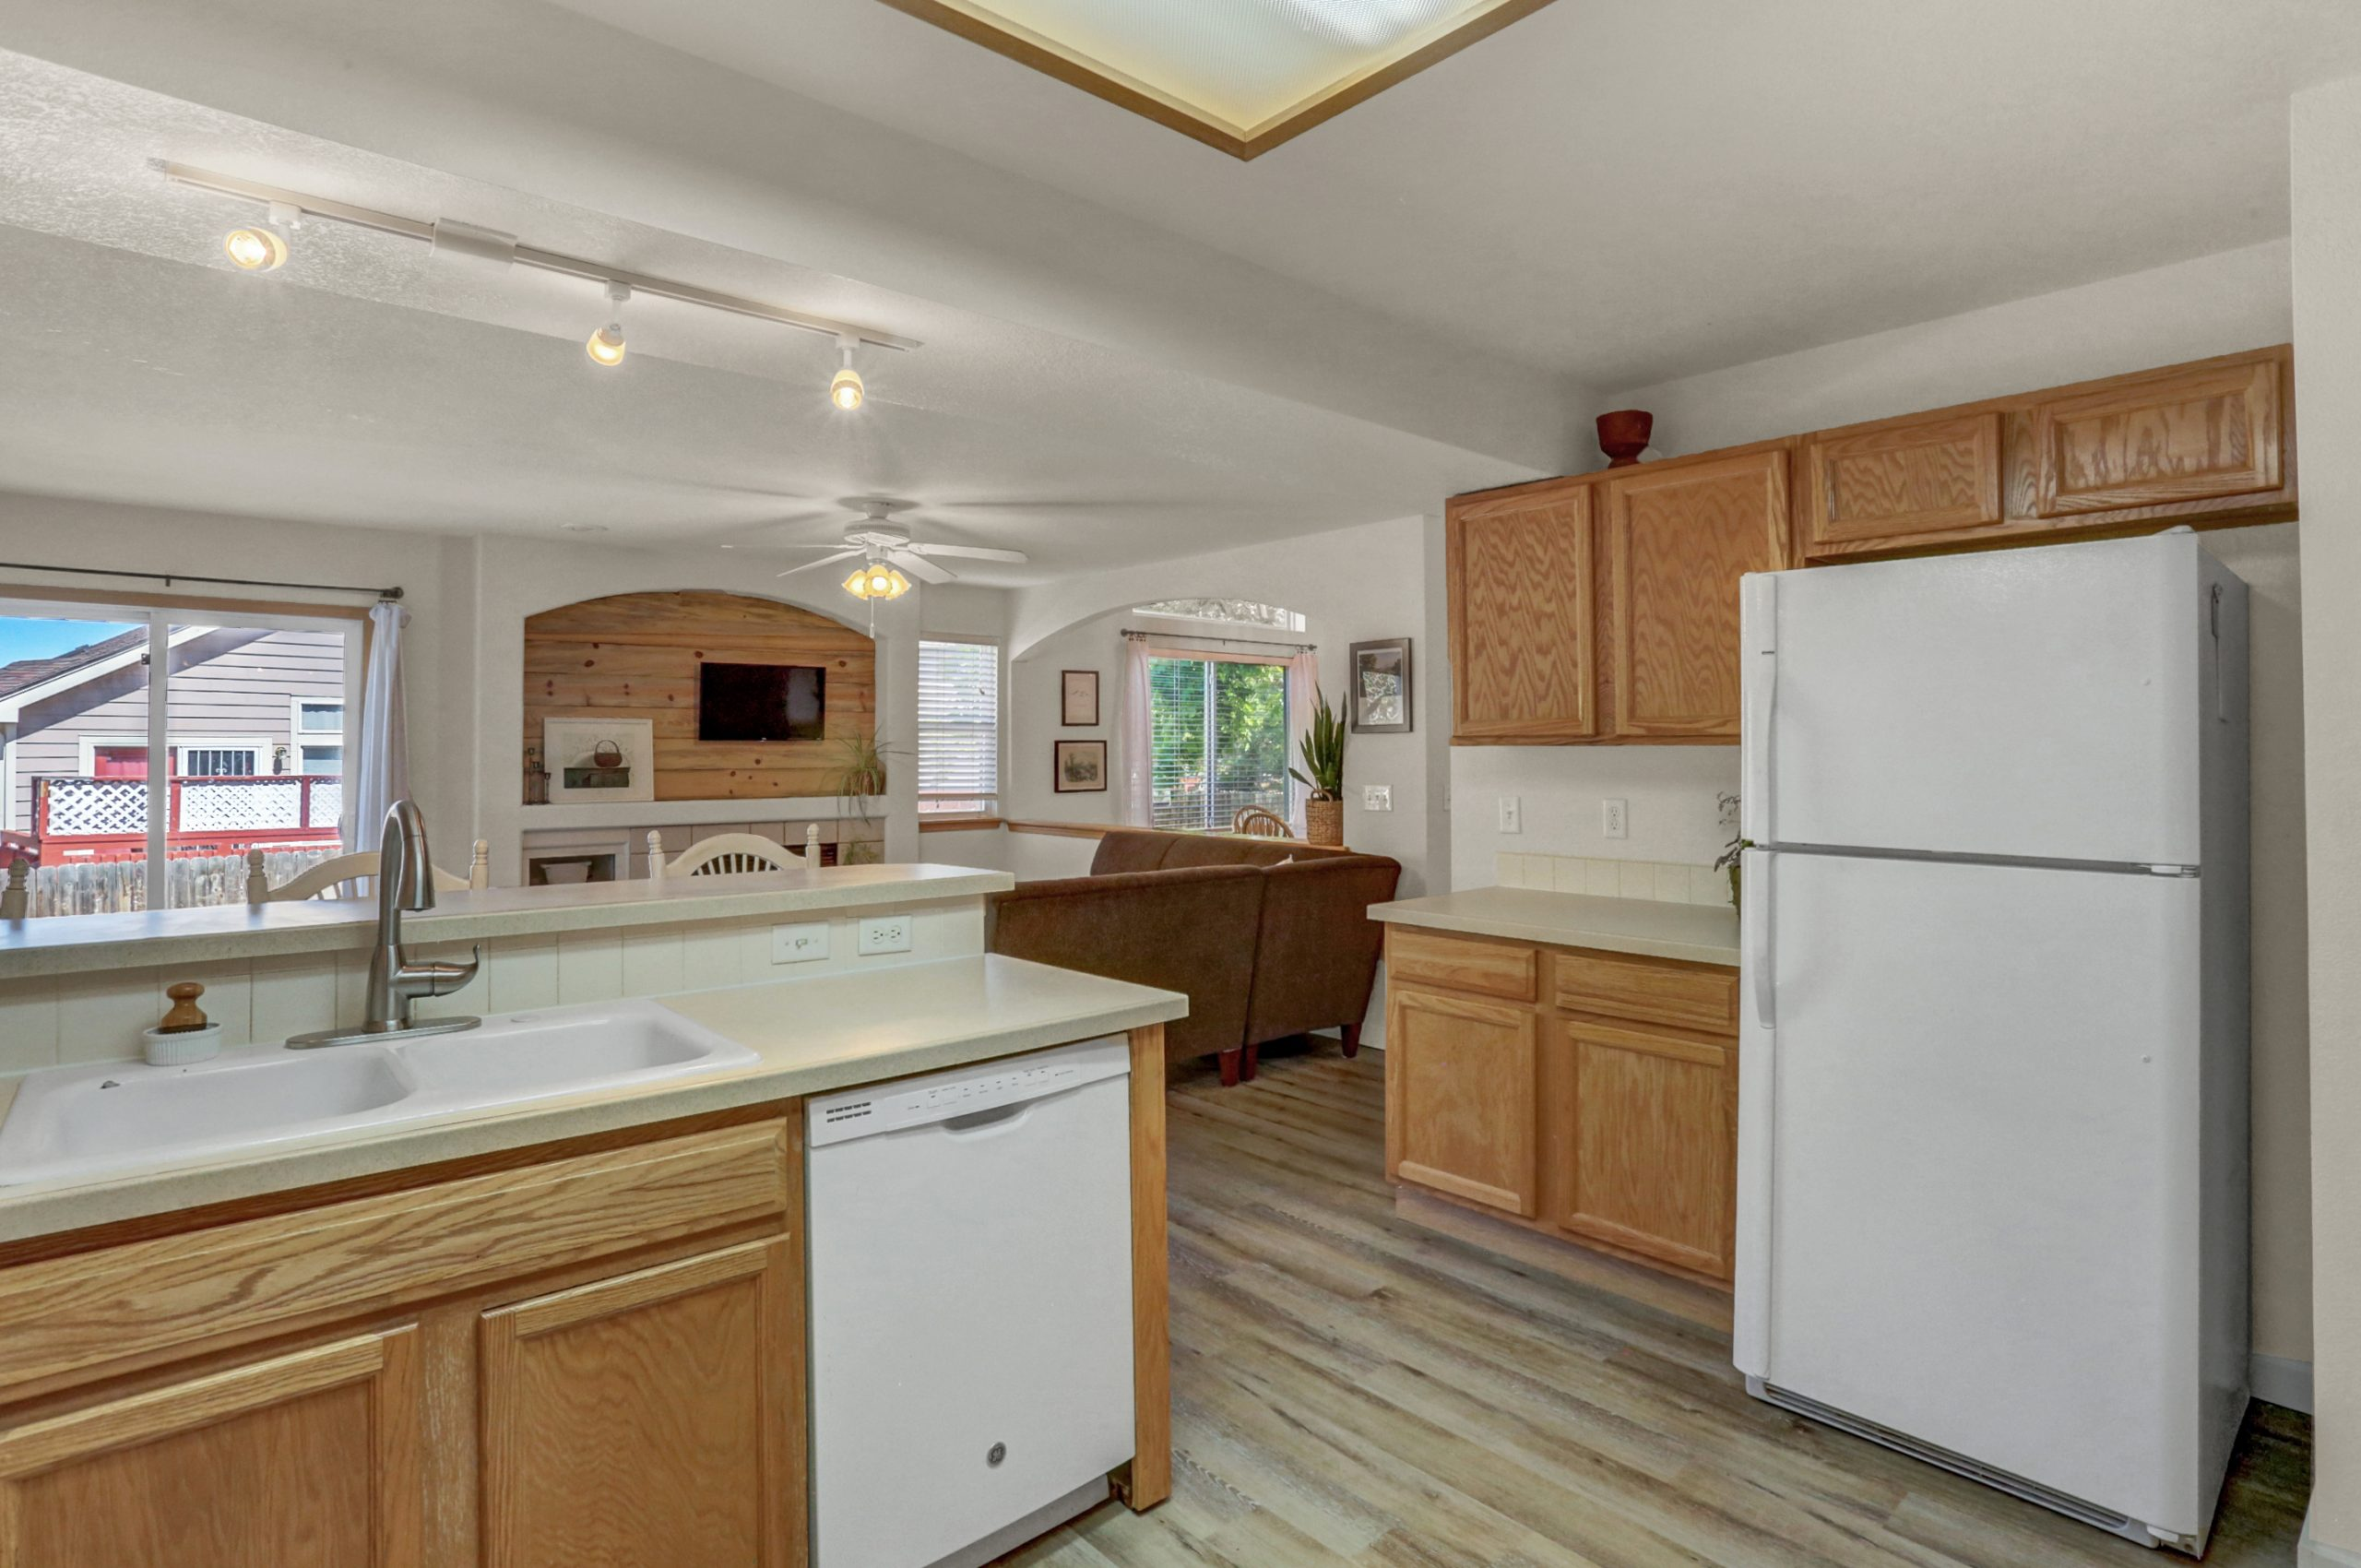 REAL ESTATE LISTING: 10502 Falcon St Firestone Kitchen